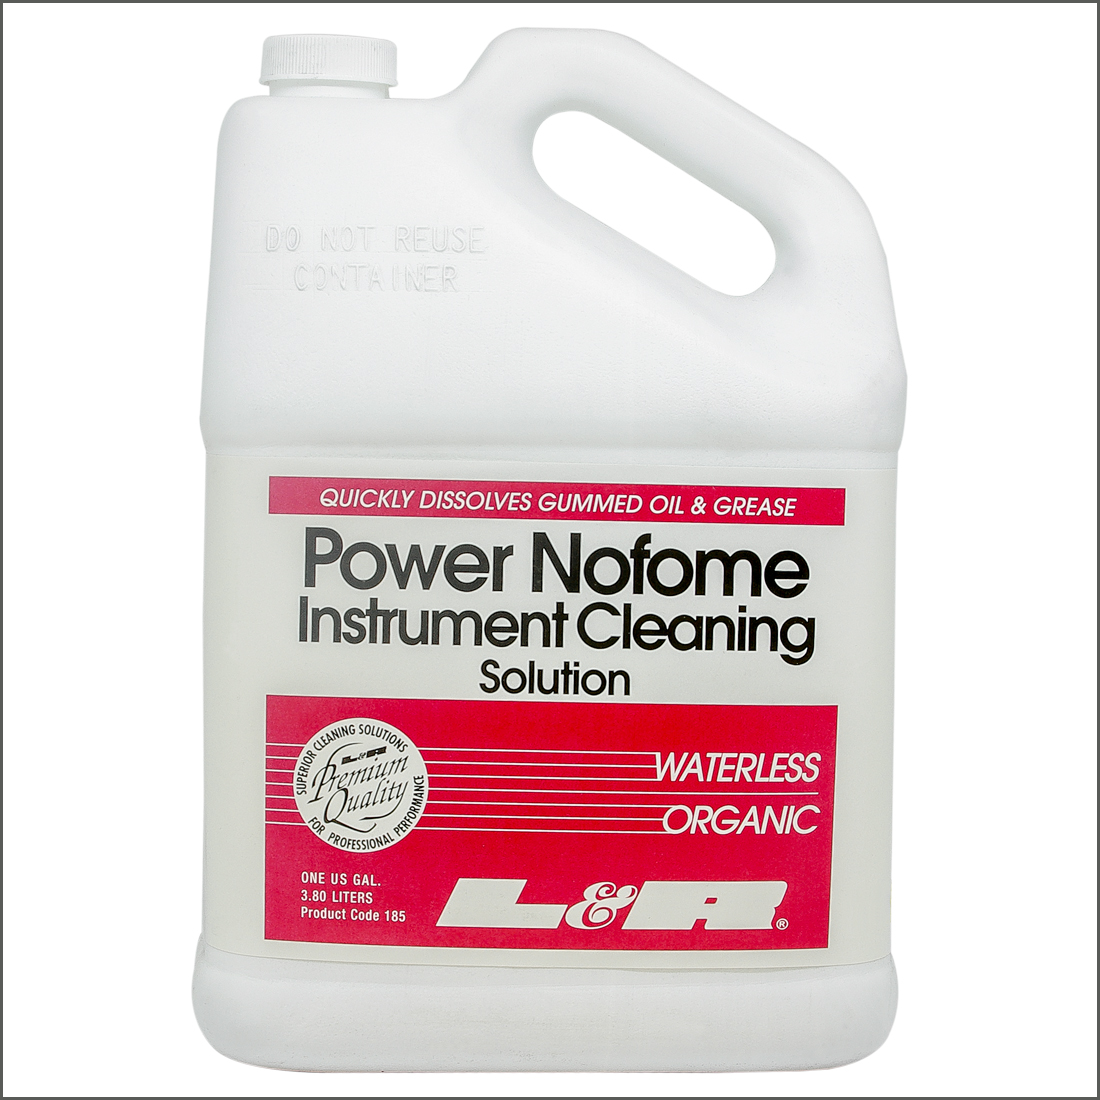 POWER NOFOME INSTRUMENT CLEANing solution-1gal